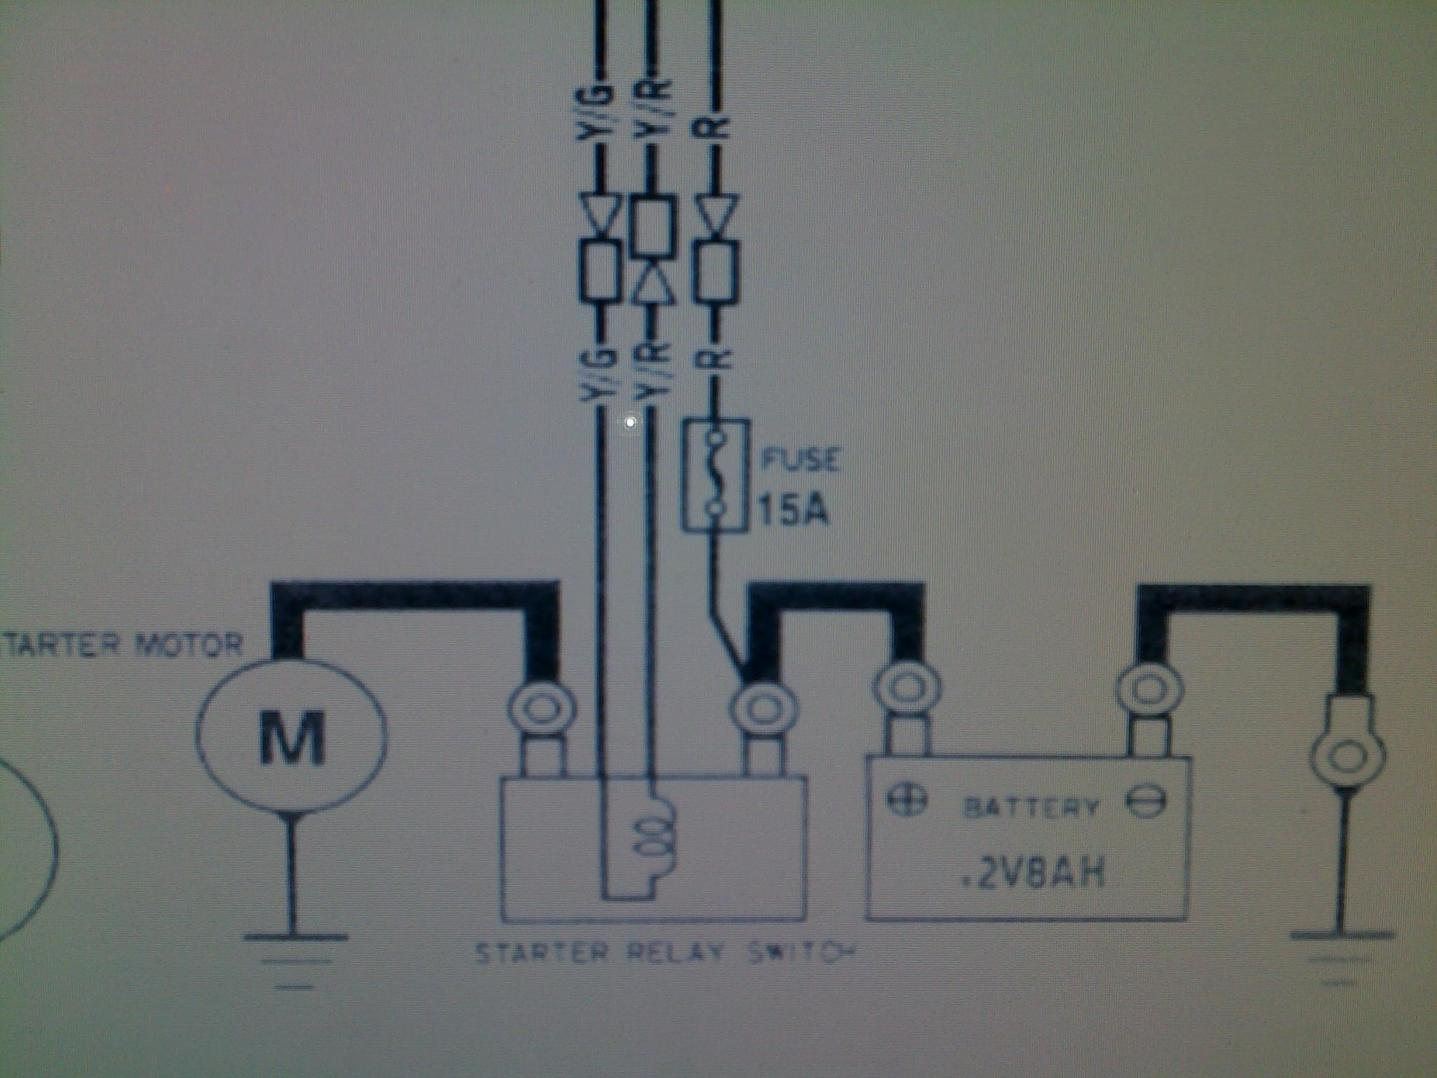 Honda 400ex Wiring Diagram Color : 400ex wiring please help page 3 honda atv forum ~ A.2002-acura-tl-radio.info Haus und Dekorationen